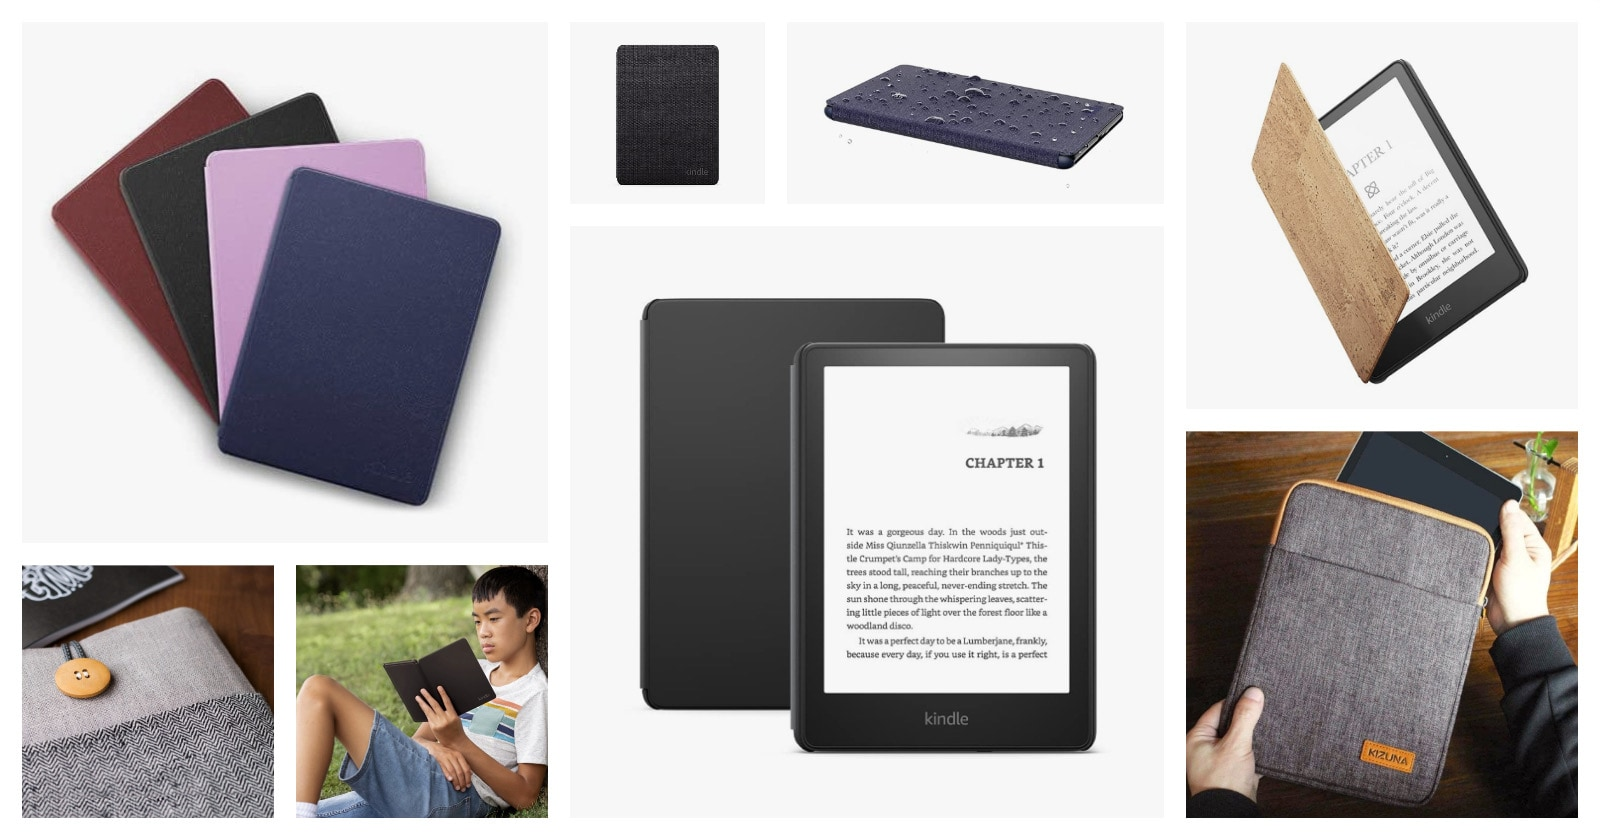 Best Kindle Paperwhite 6.8 2021 case covers so far